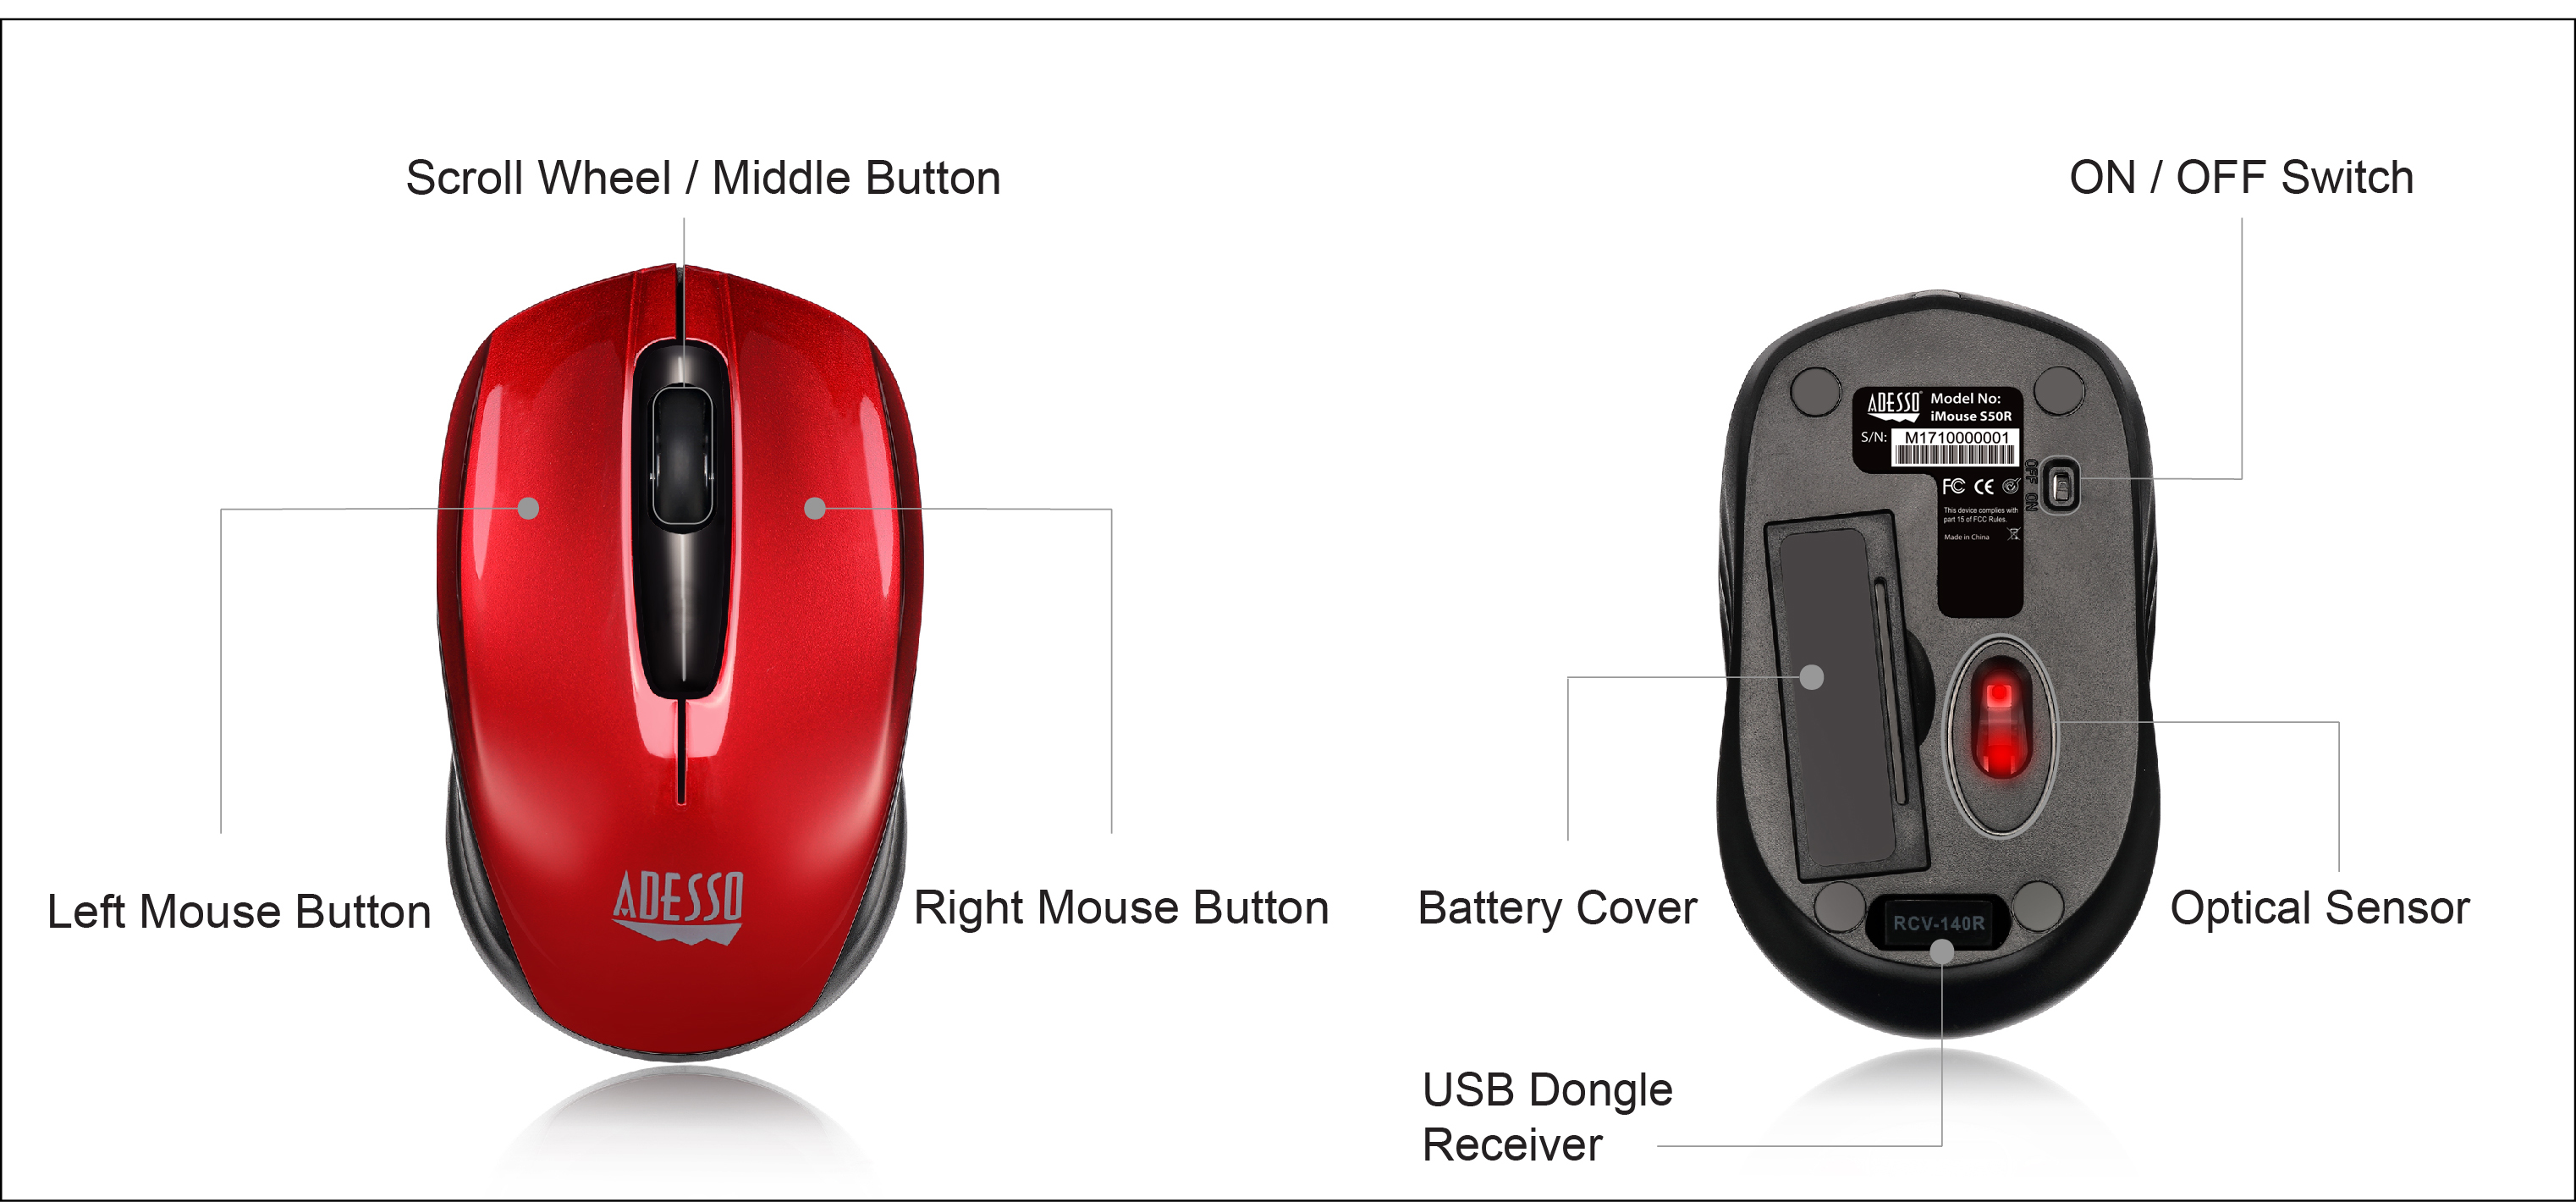 Imouse S50r 24ghz Wireless Mini Mouse Adesso Inc Your Input Computer Diagram Part In This Experience New Levels Of Productivity With The Advanced Offers You 30 Feet